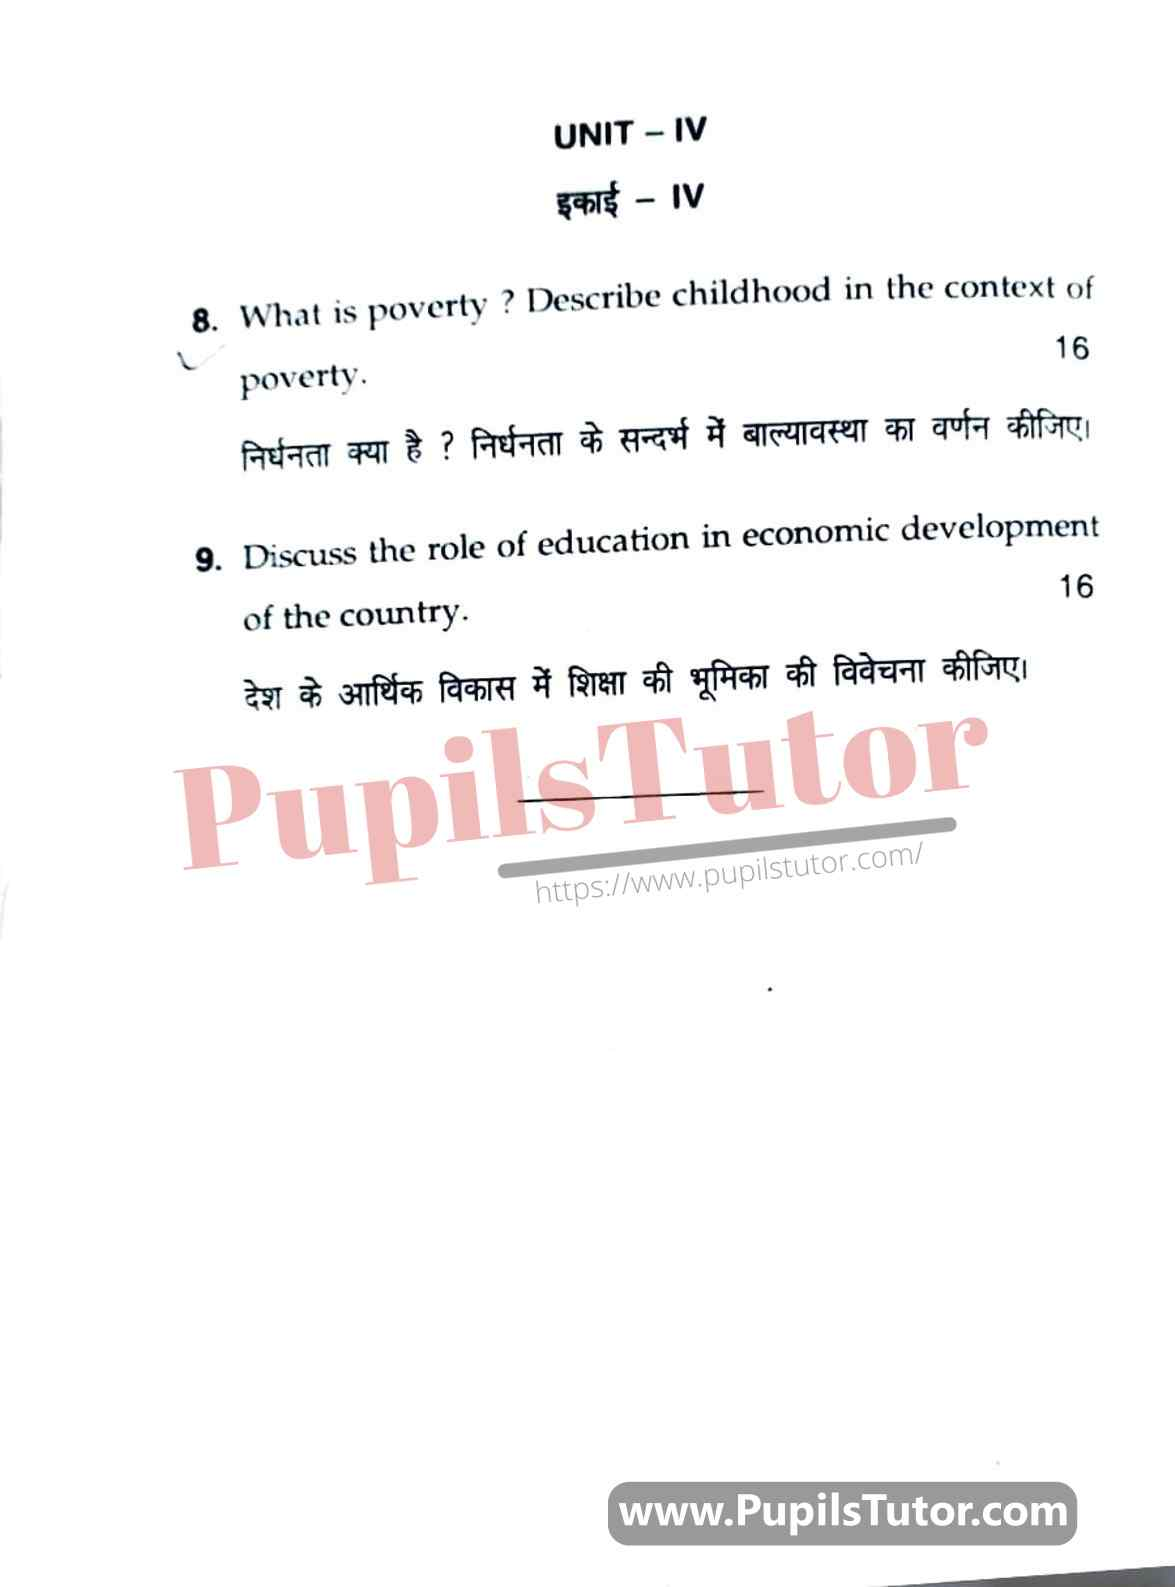 KUK (Kurukshetra University, Haryana) Childhood And Growing Up Question Paper 2021 For B.Ed 1st And 2nd Year And All The 4 Semesters In English And Hindi Medium Free Download PDF - Page 4 - pupilstutor